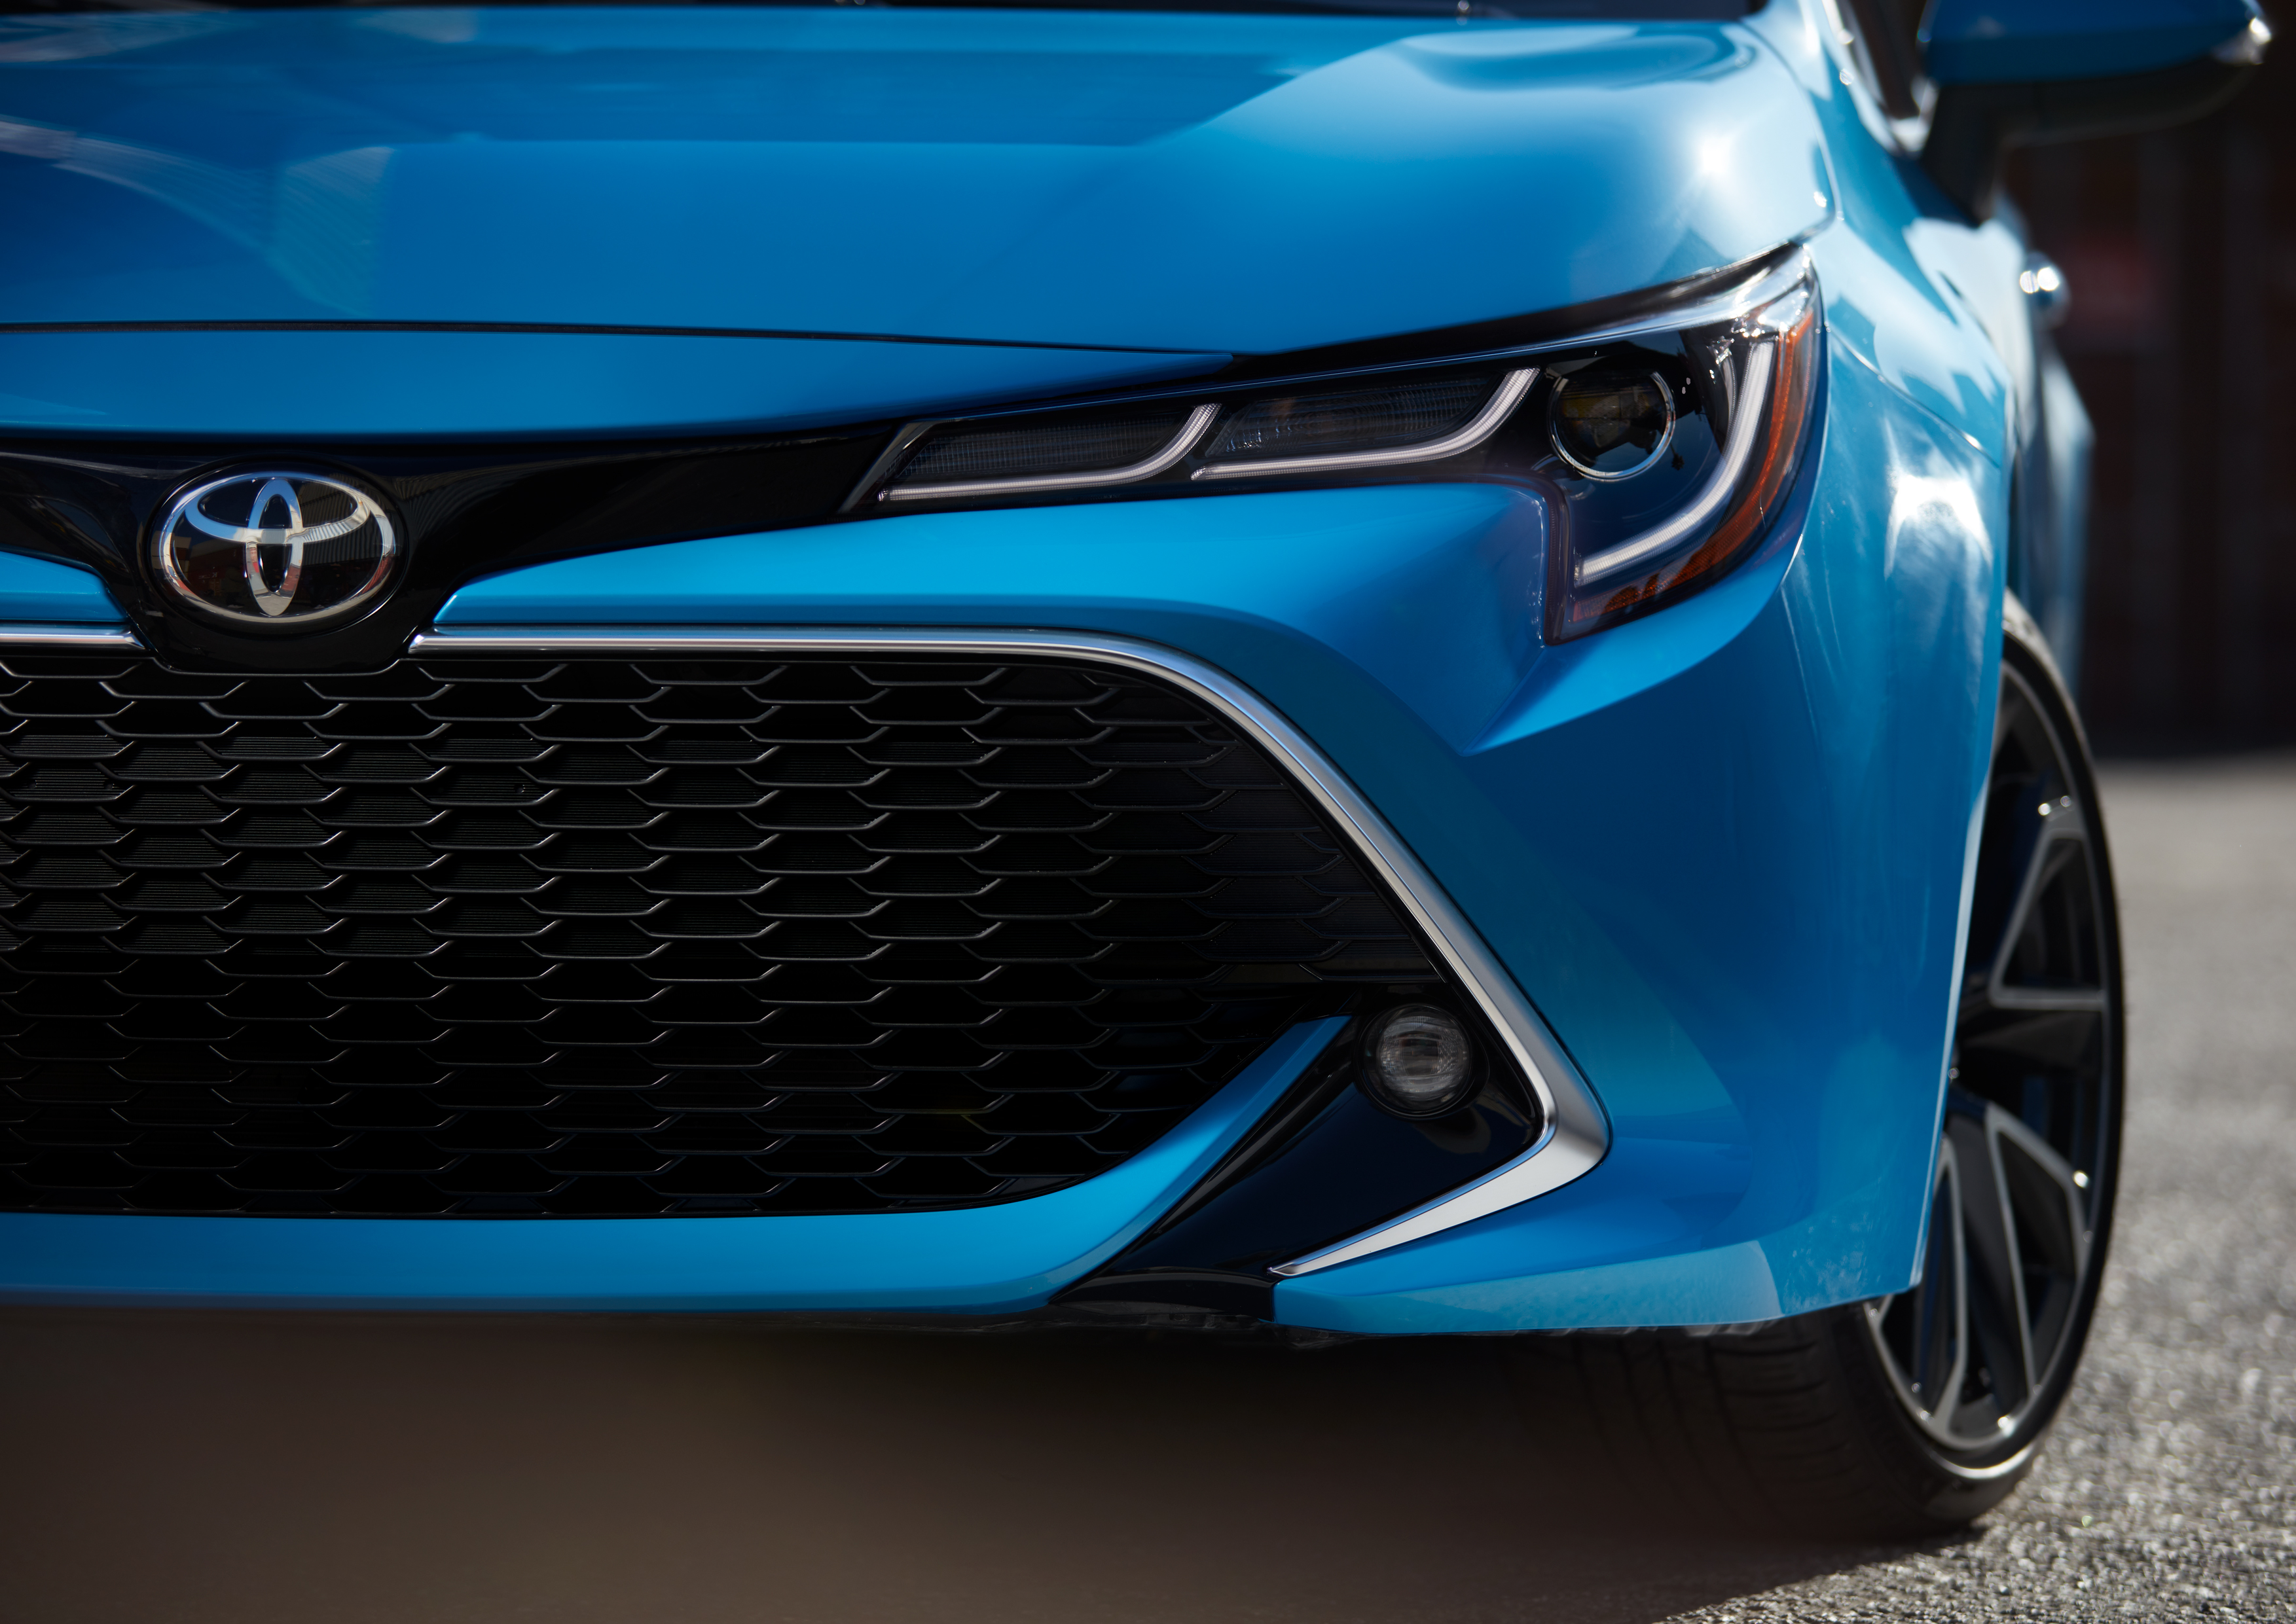 Toyota Corolla Hatchback accessories specifications